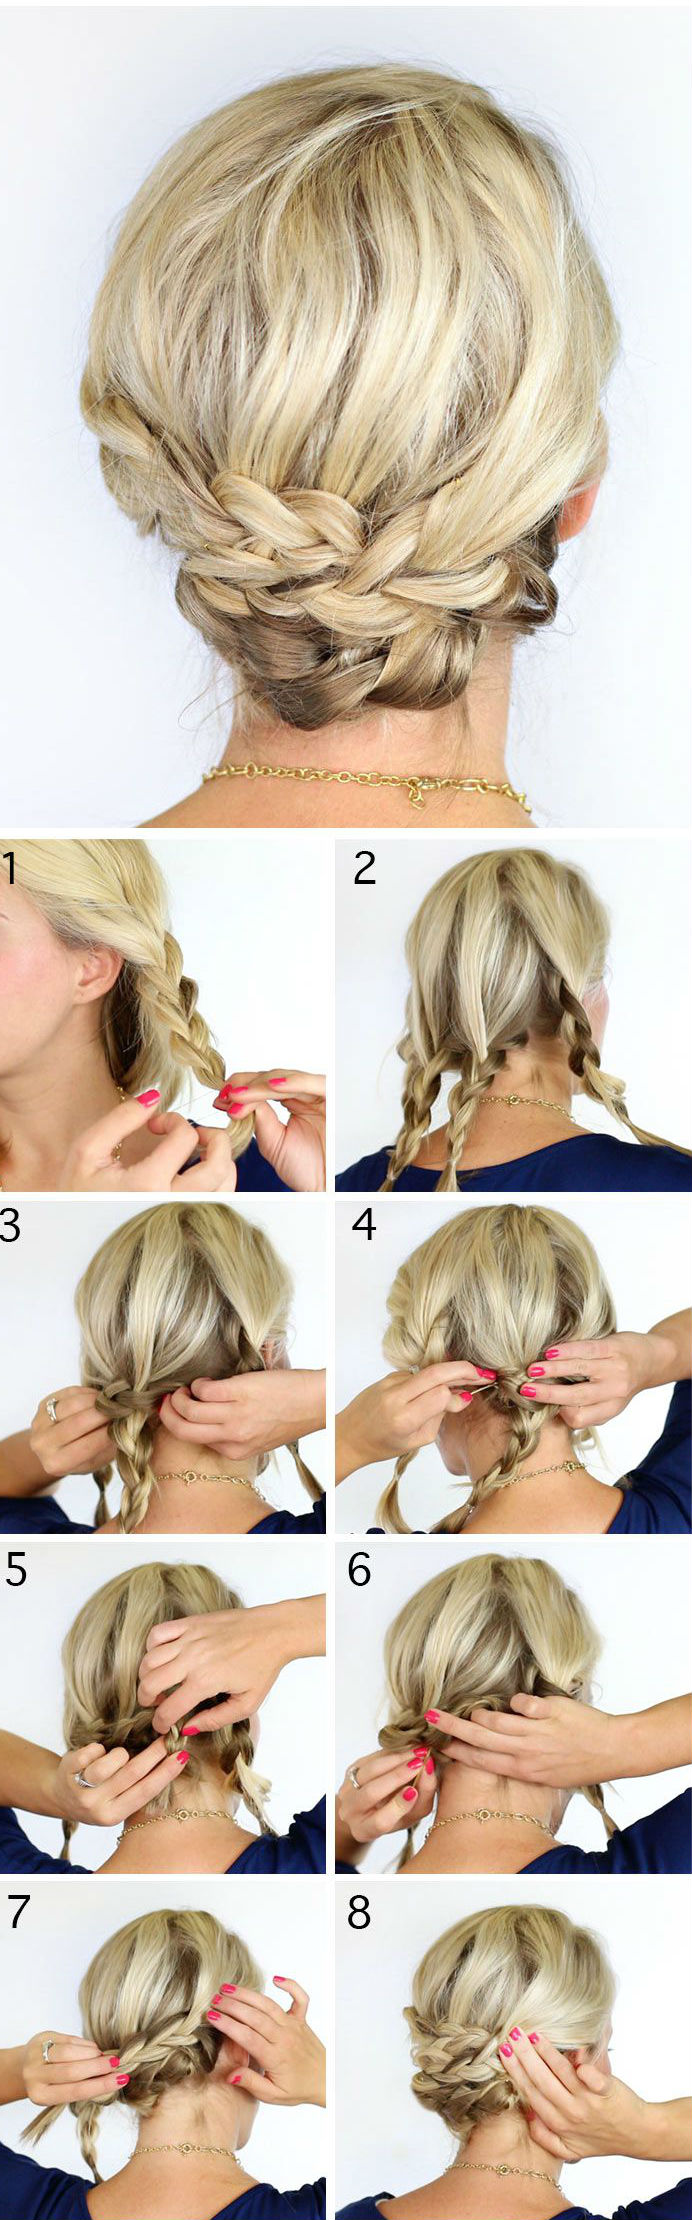 Braided Updo For Short Hair BEAUTY Hair, Makeup, Nails